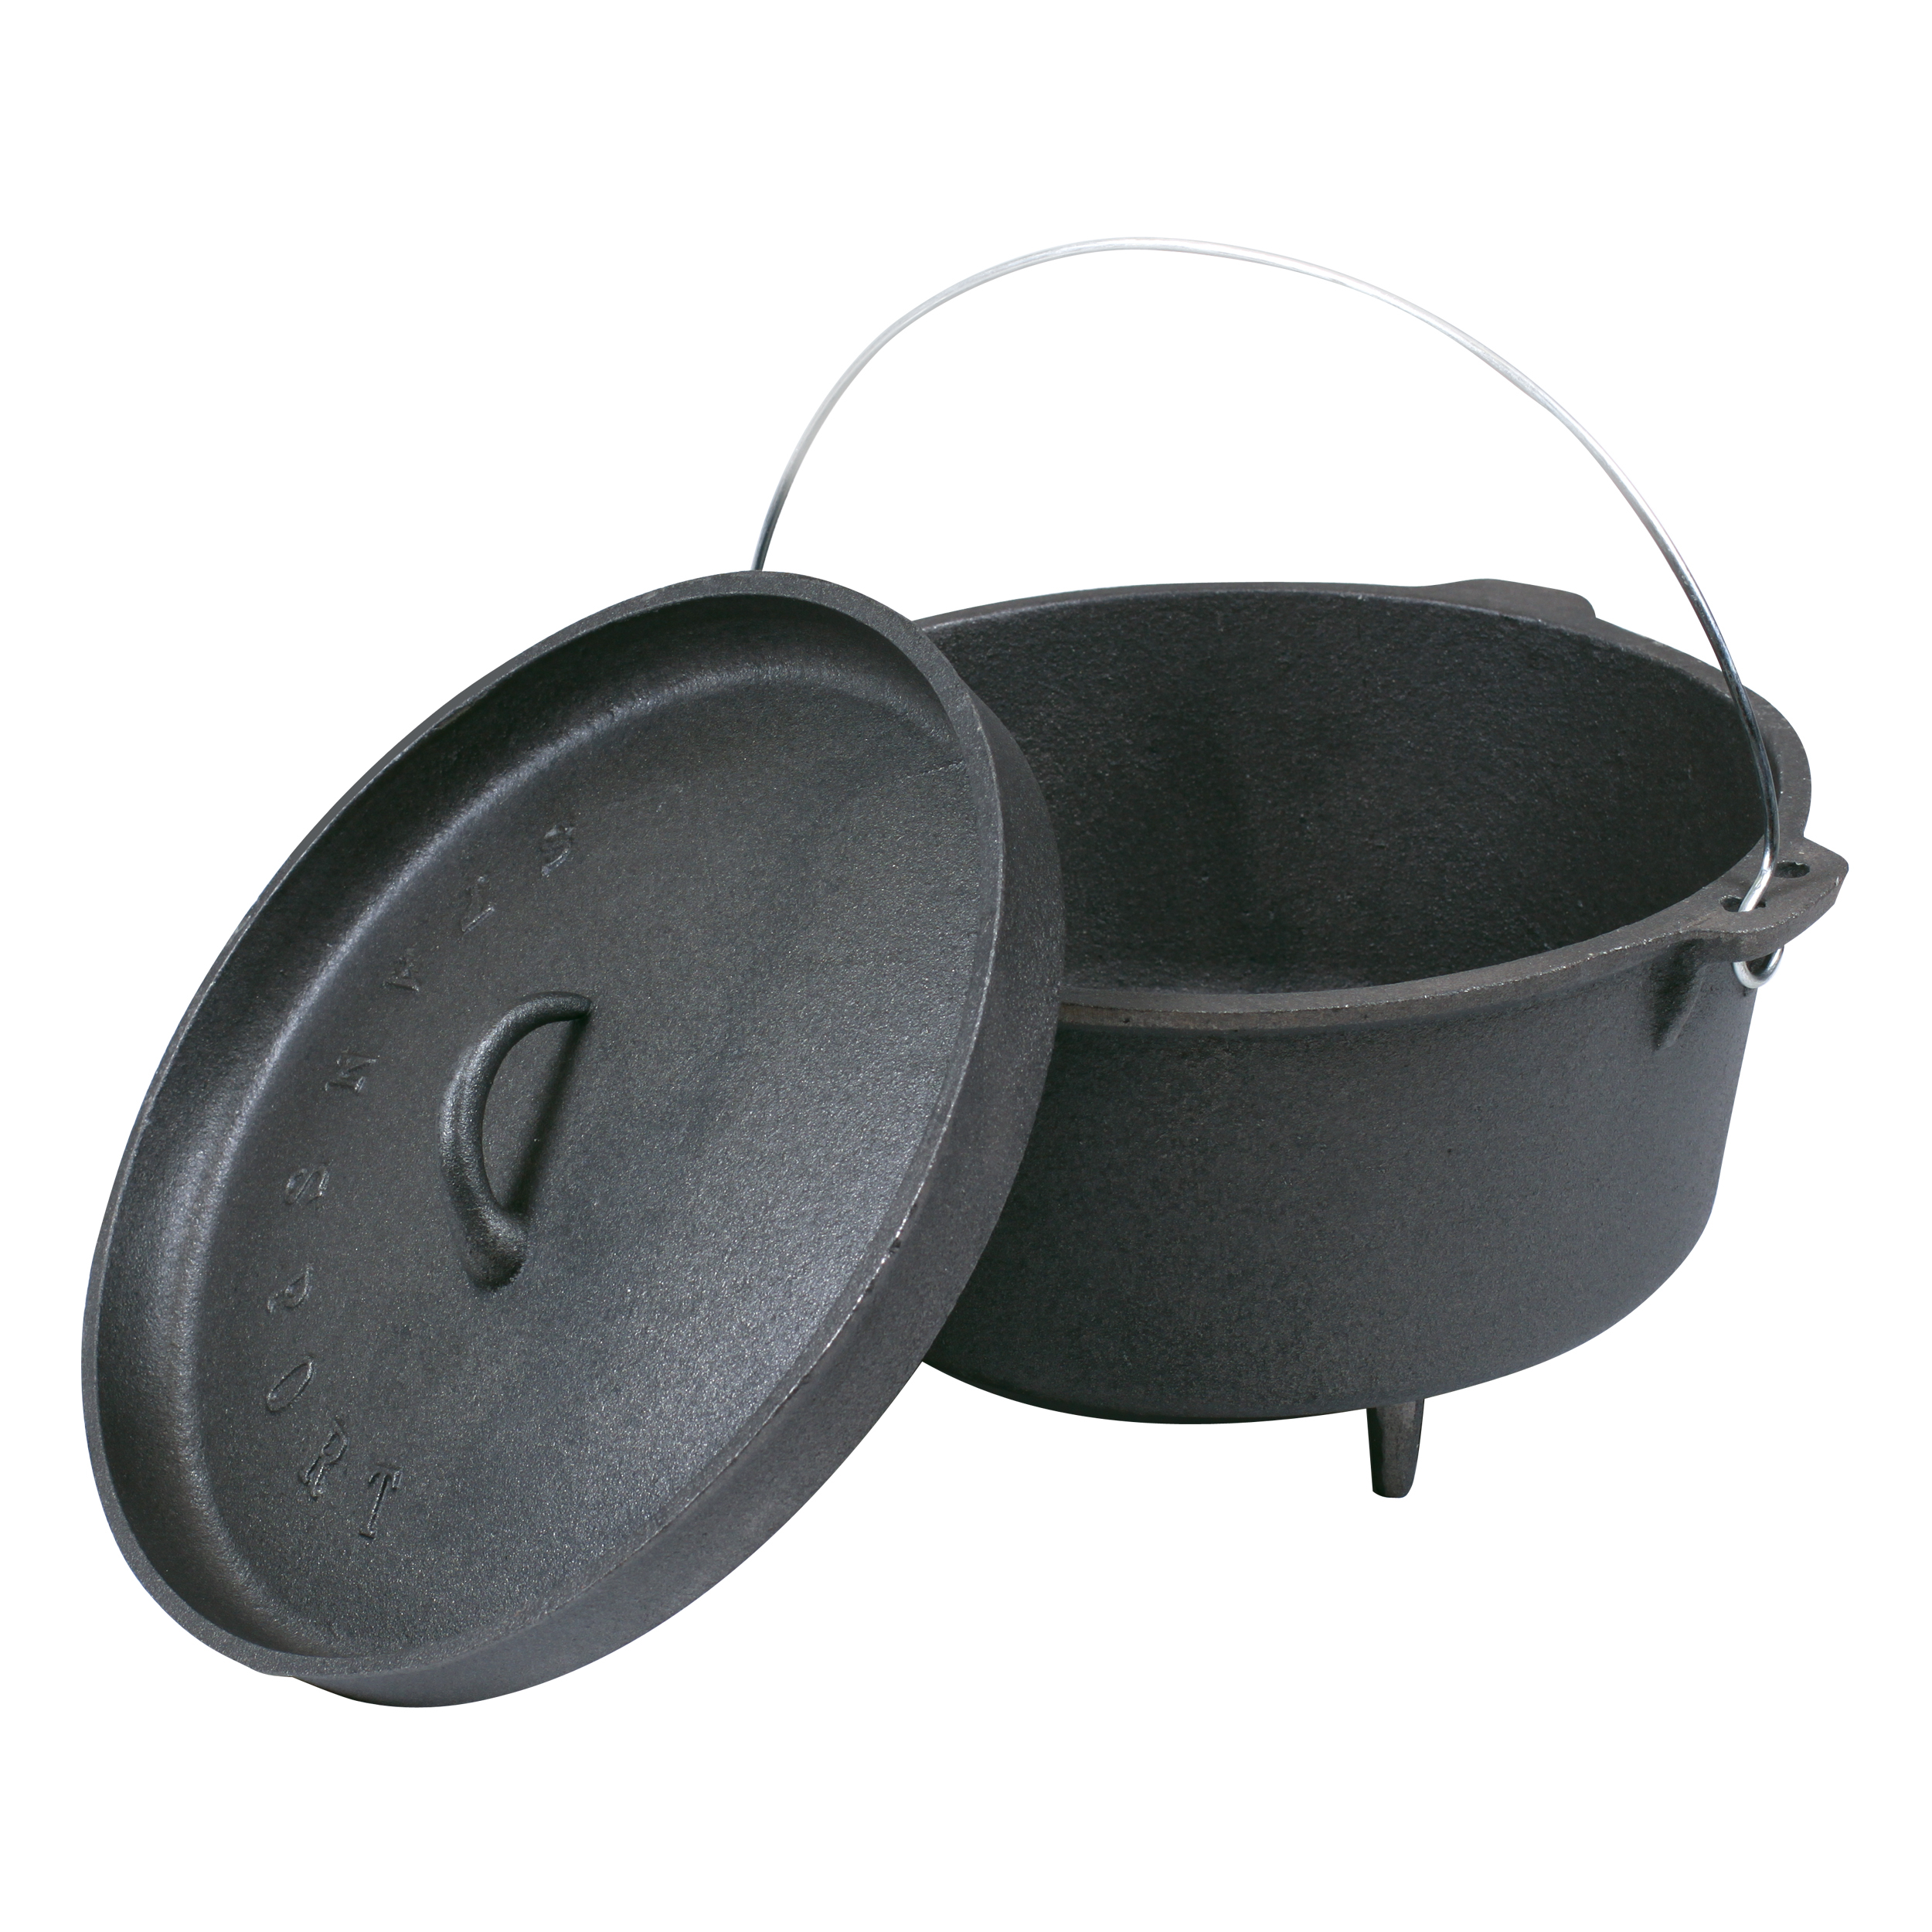 Stansport Cast Iron Dutch Oven 8 Quart Outdoor Camping ...